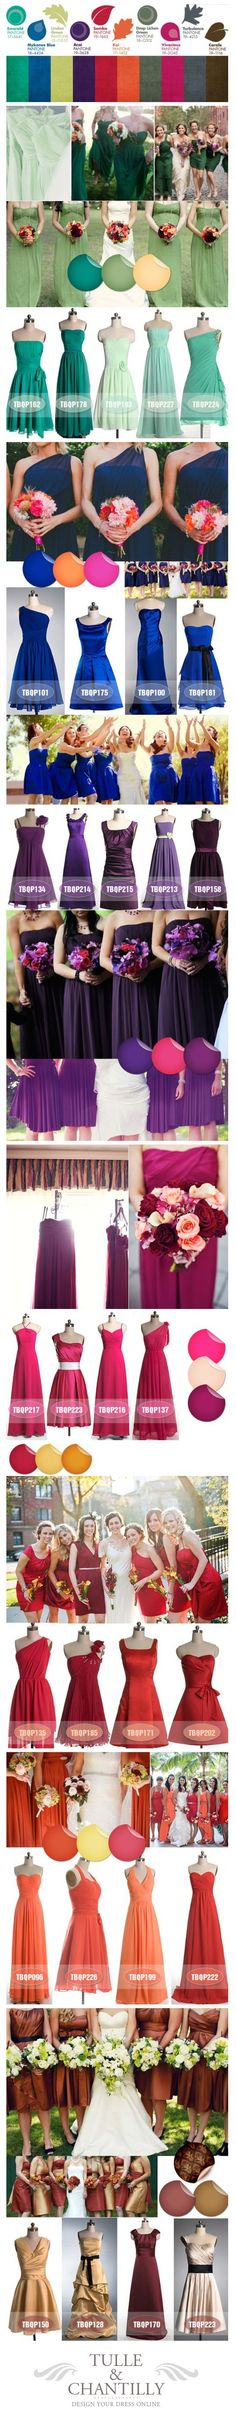 Colores para damas de honor de bodas en otoño    ----Purple, blue, green, red, orange bridesmaid dresses color ideas for fall wedding.